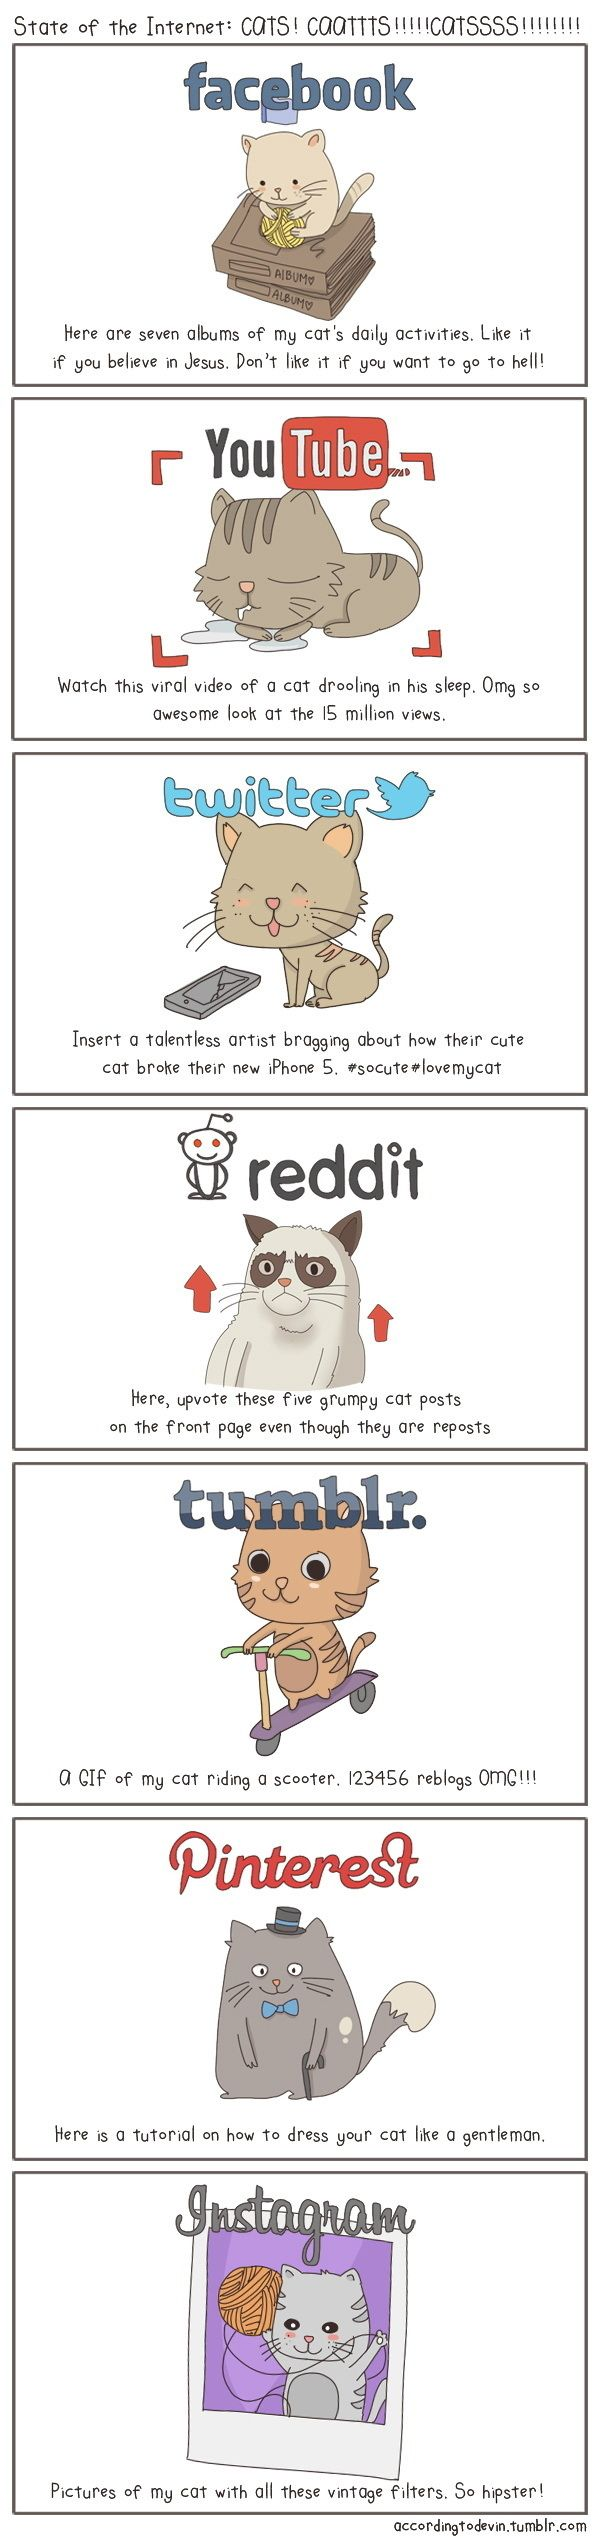 The State Of The Internet, As Told With Cats - BuzzFeed Mobile